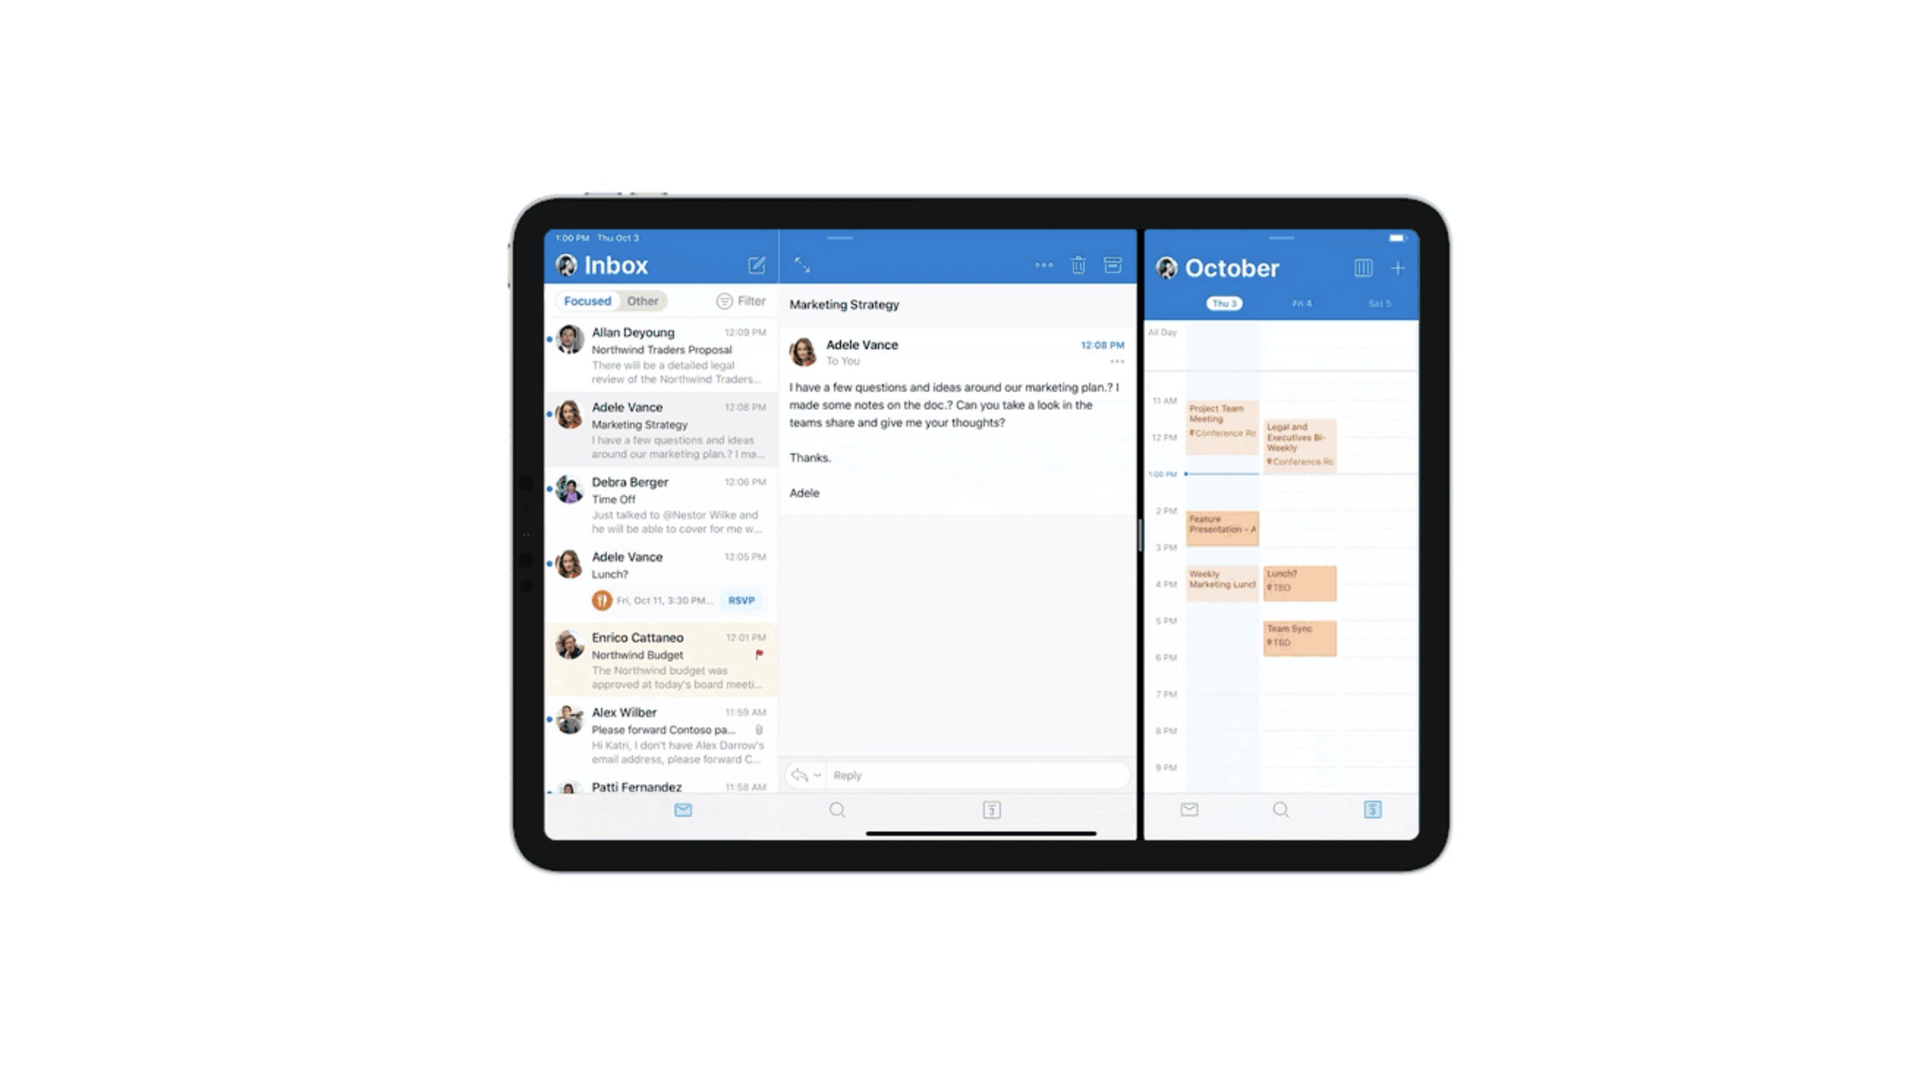 Microsoft Outlook brings long-awaited multitasking features to the iPad - 9to5Mac